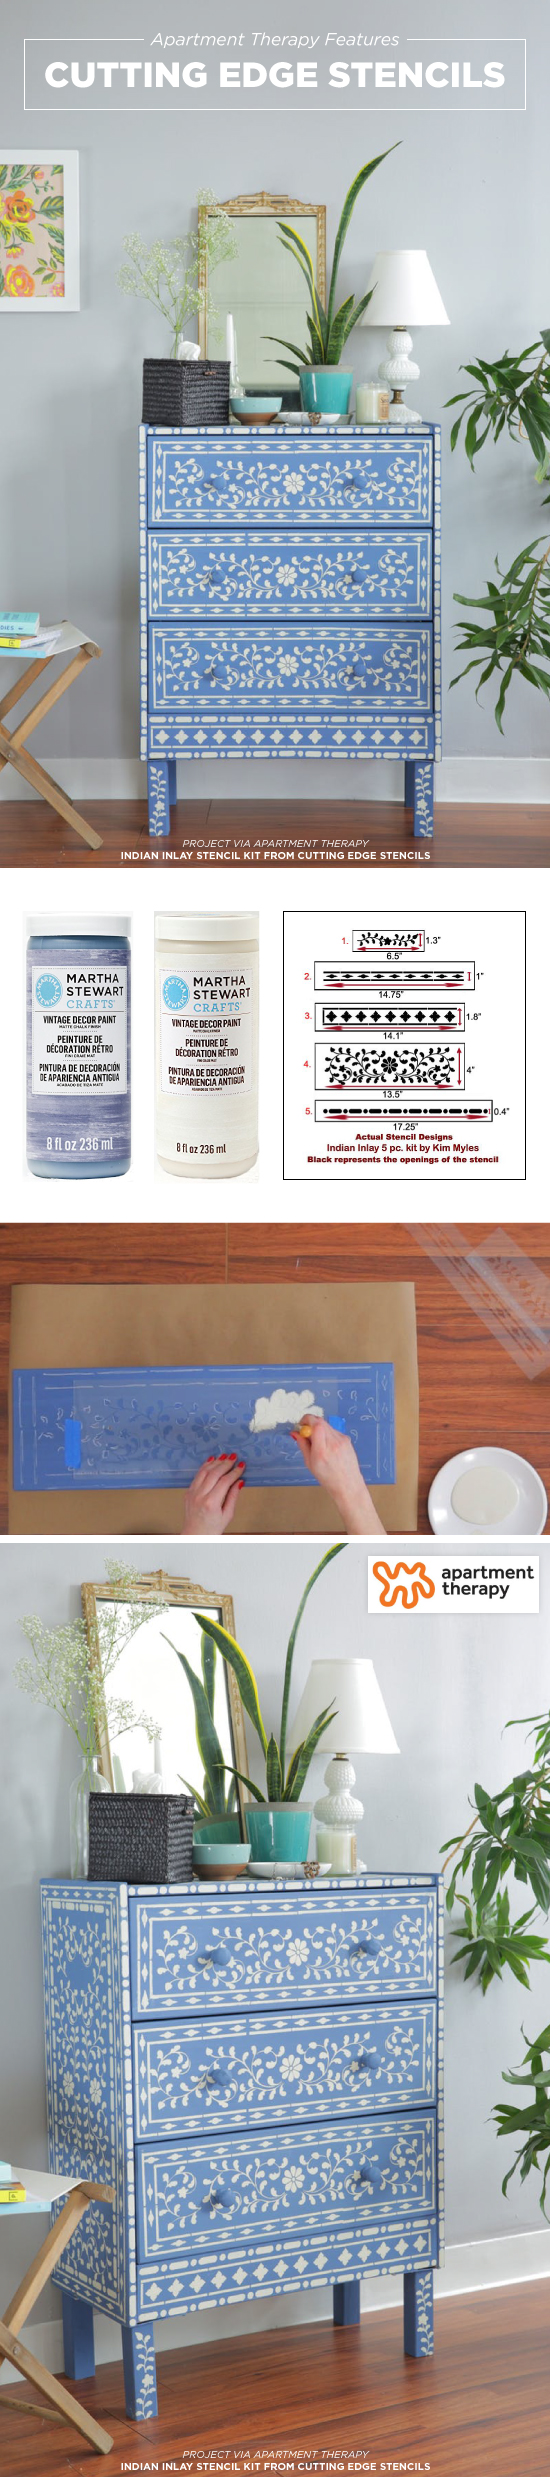 Apartment Therapy shares how to stencil $35 Ikea Rast dresser using the Indian Inlay Stencil Kit designed by Kim Myles from Cutting Edge Stencils.  http://www.cuttingedgestencils.com/indian-inlay-stencil-furniture.html